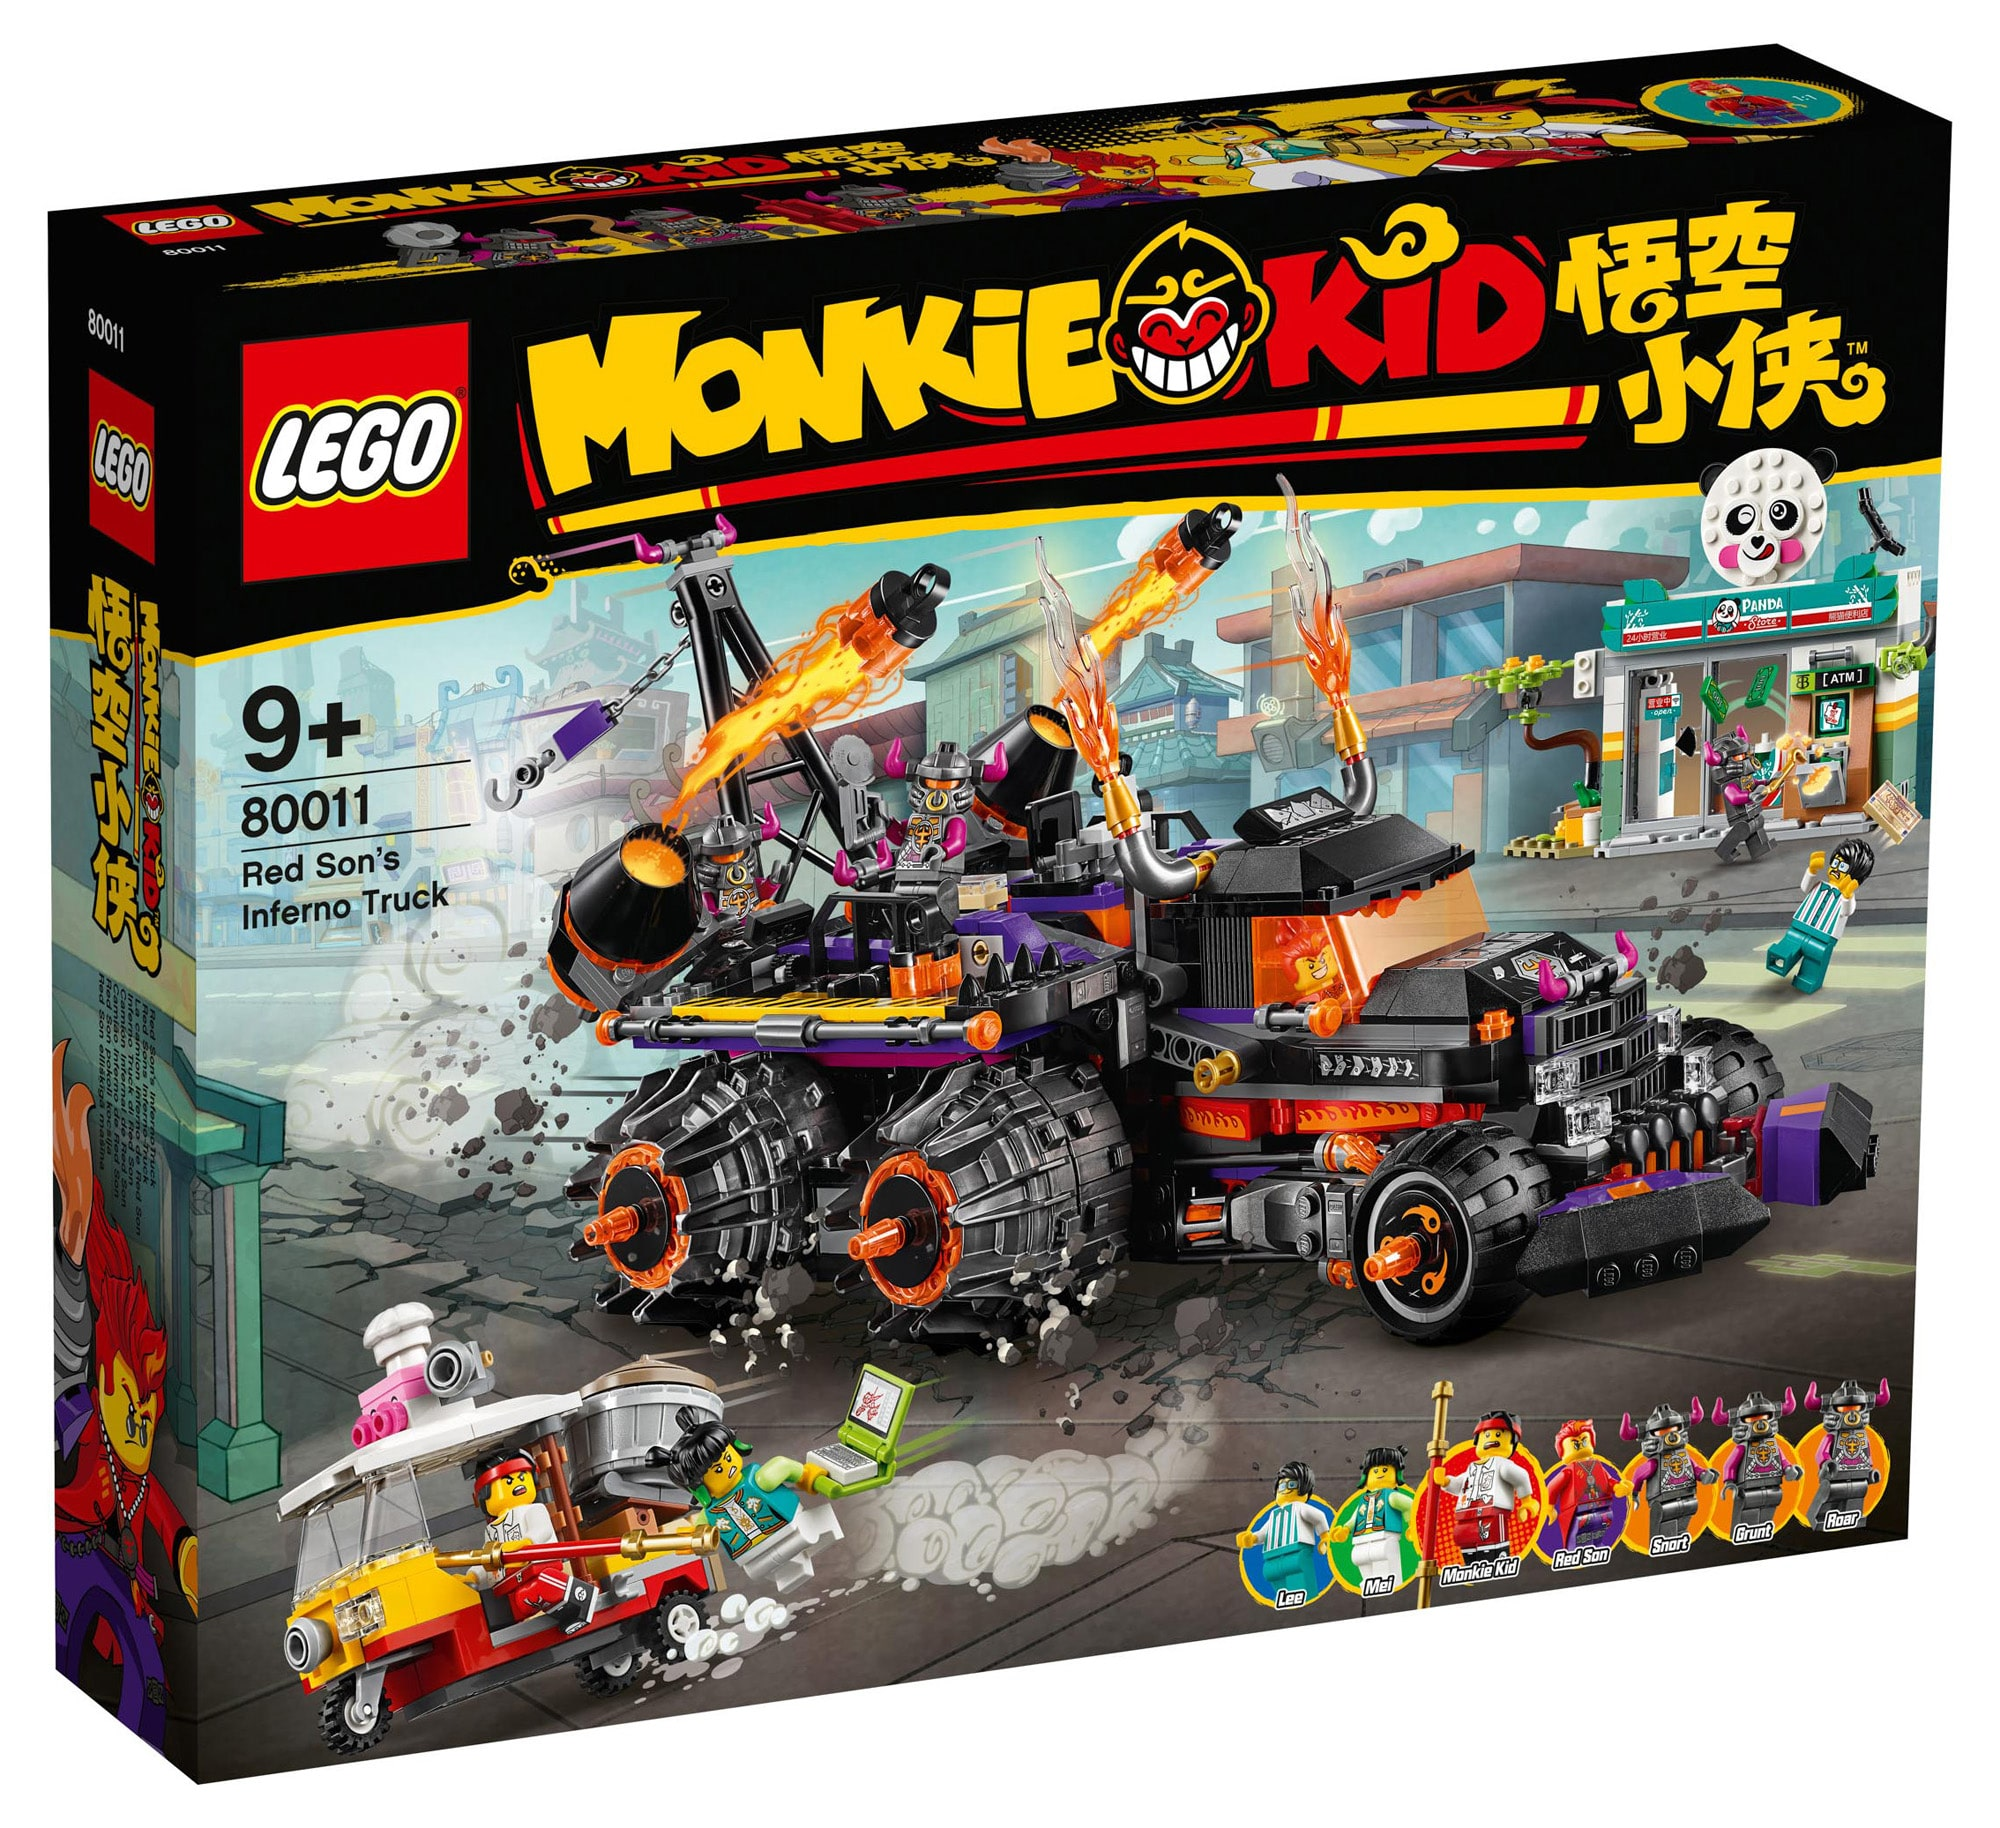 LEGO Monkie Kid 80011 Red Sons Inferno Truck